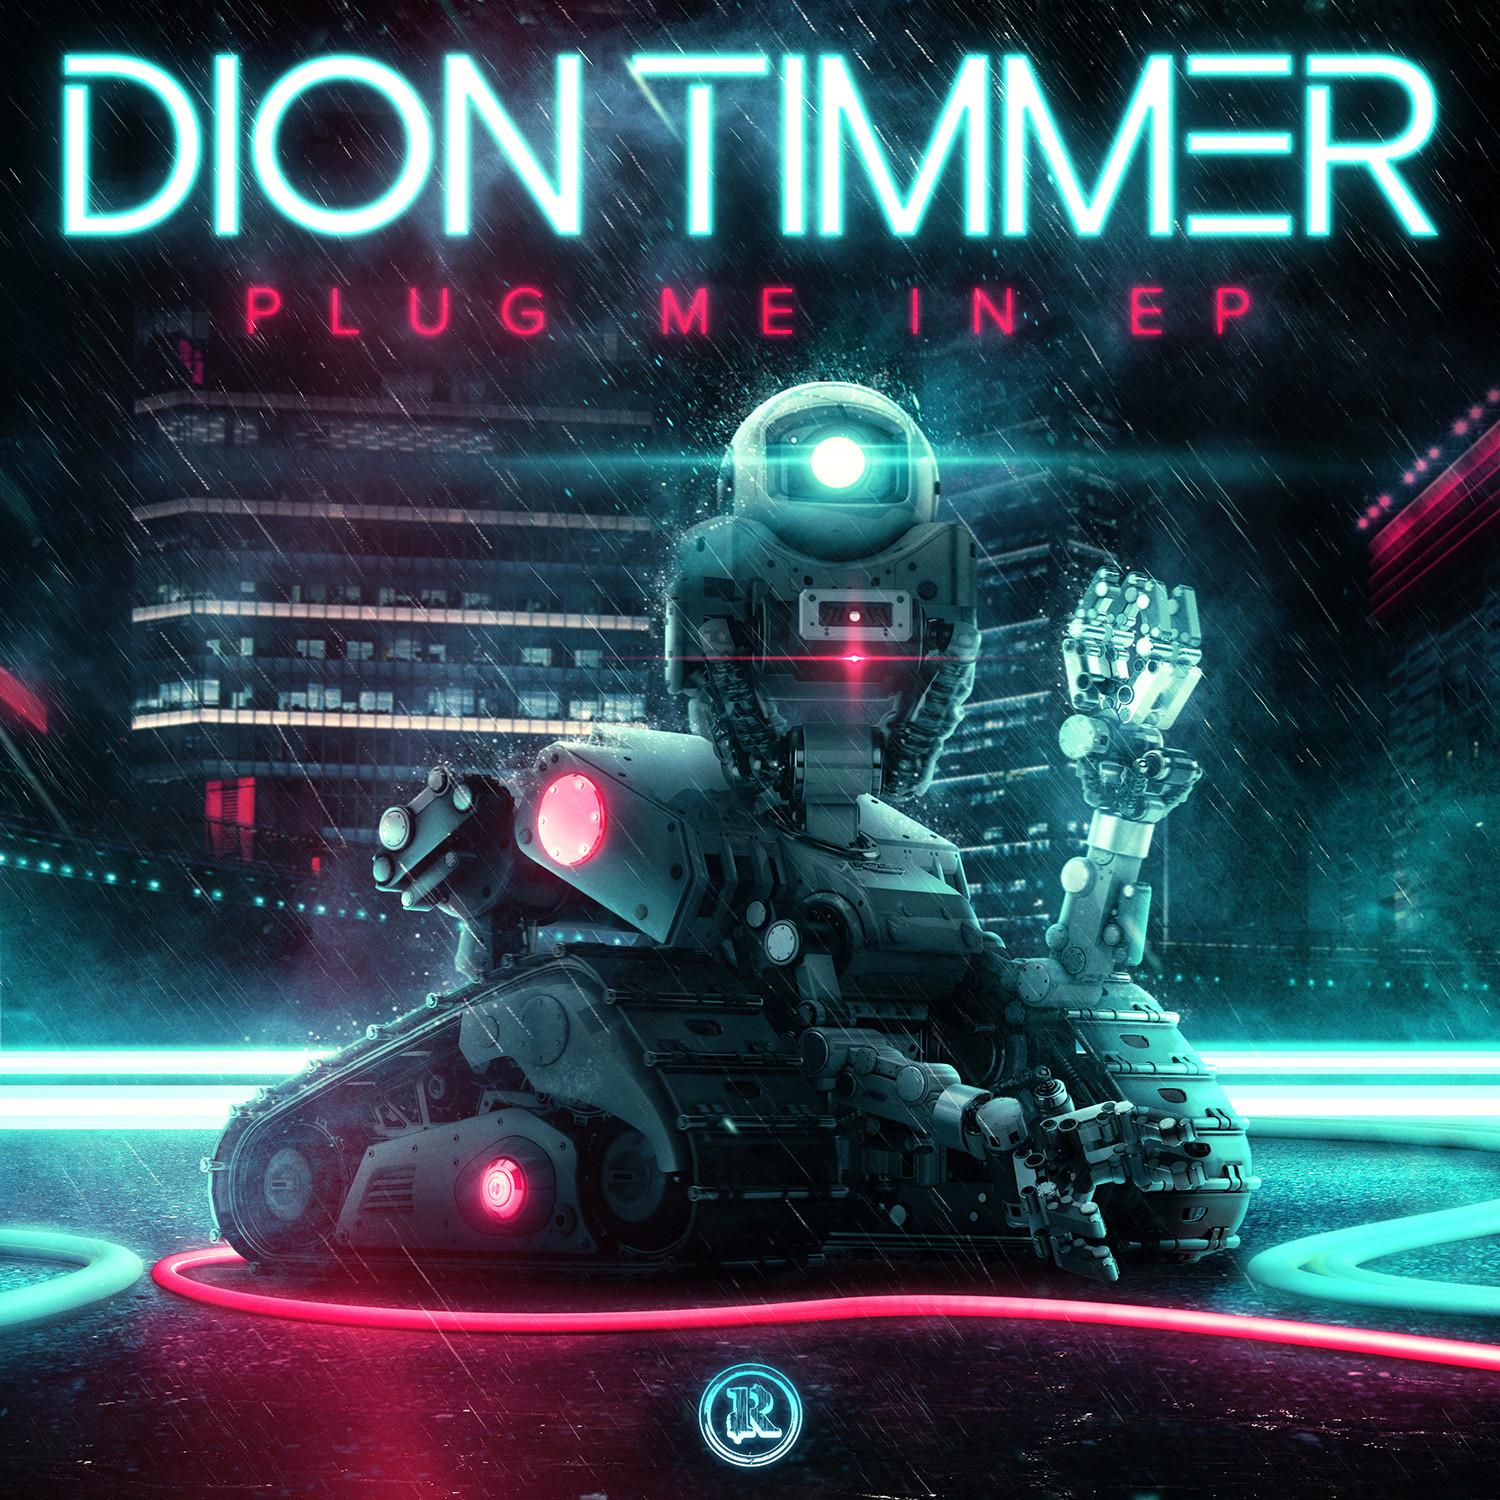 Eric hallquist rt dion timmer plug me in art 1500px